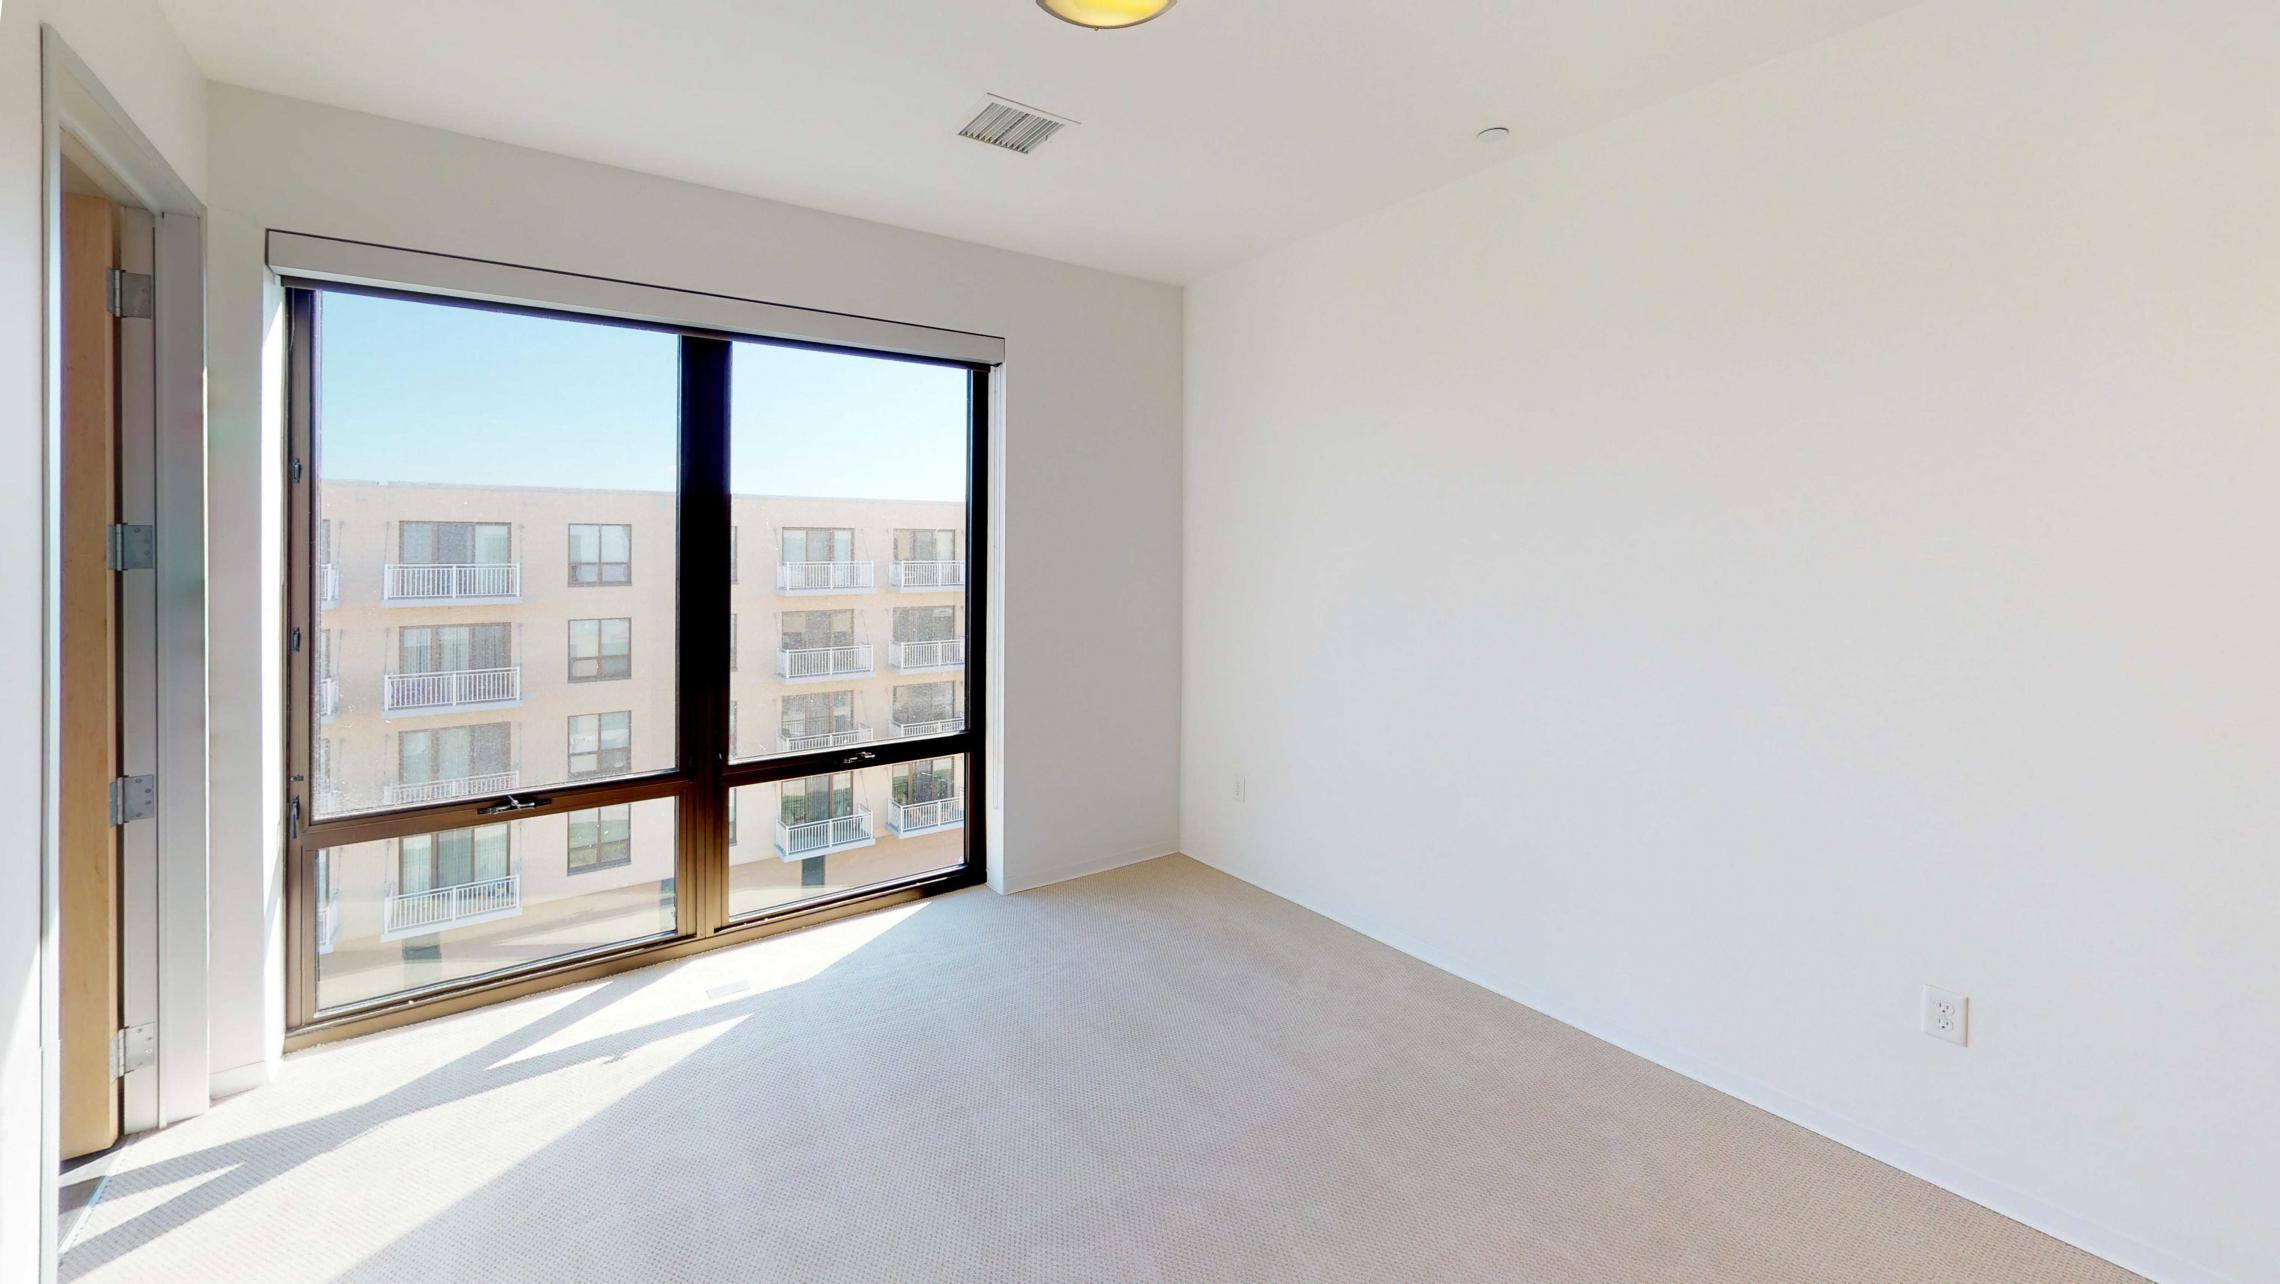 SEVEN27-Apartment-524-two bedroom-Modern-Luxury-Upscale-Capitol View-Lake View-Top Floor-Balcony-Terrace-City View-Master.jpg